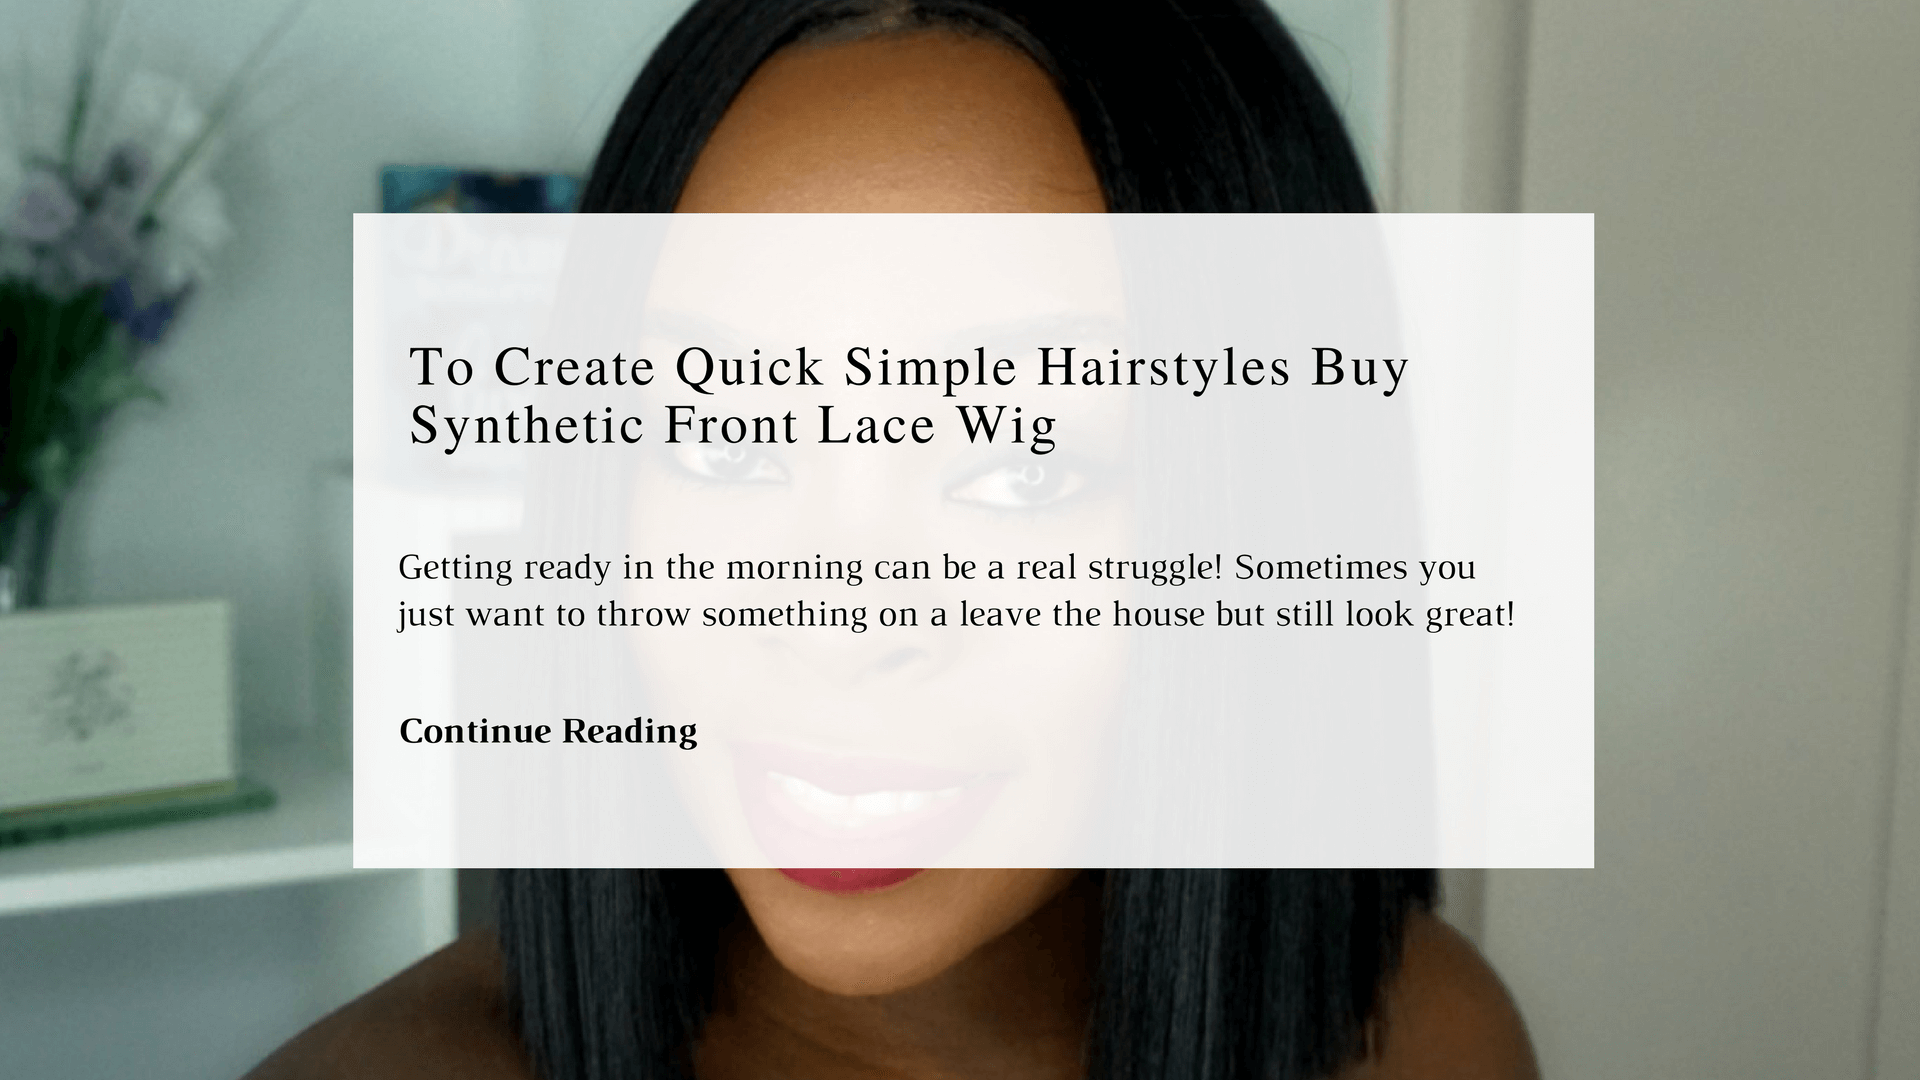 Buy Cheap Synthetic Front Lace Wig To Create Quick Simple Hairstyle | Chiclypoised | Chiclypoised.com